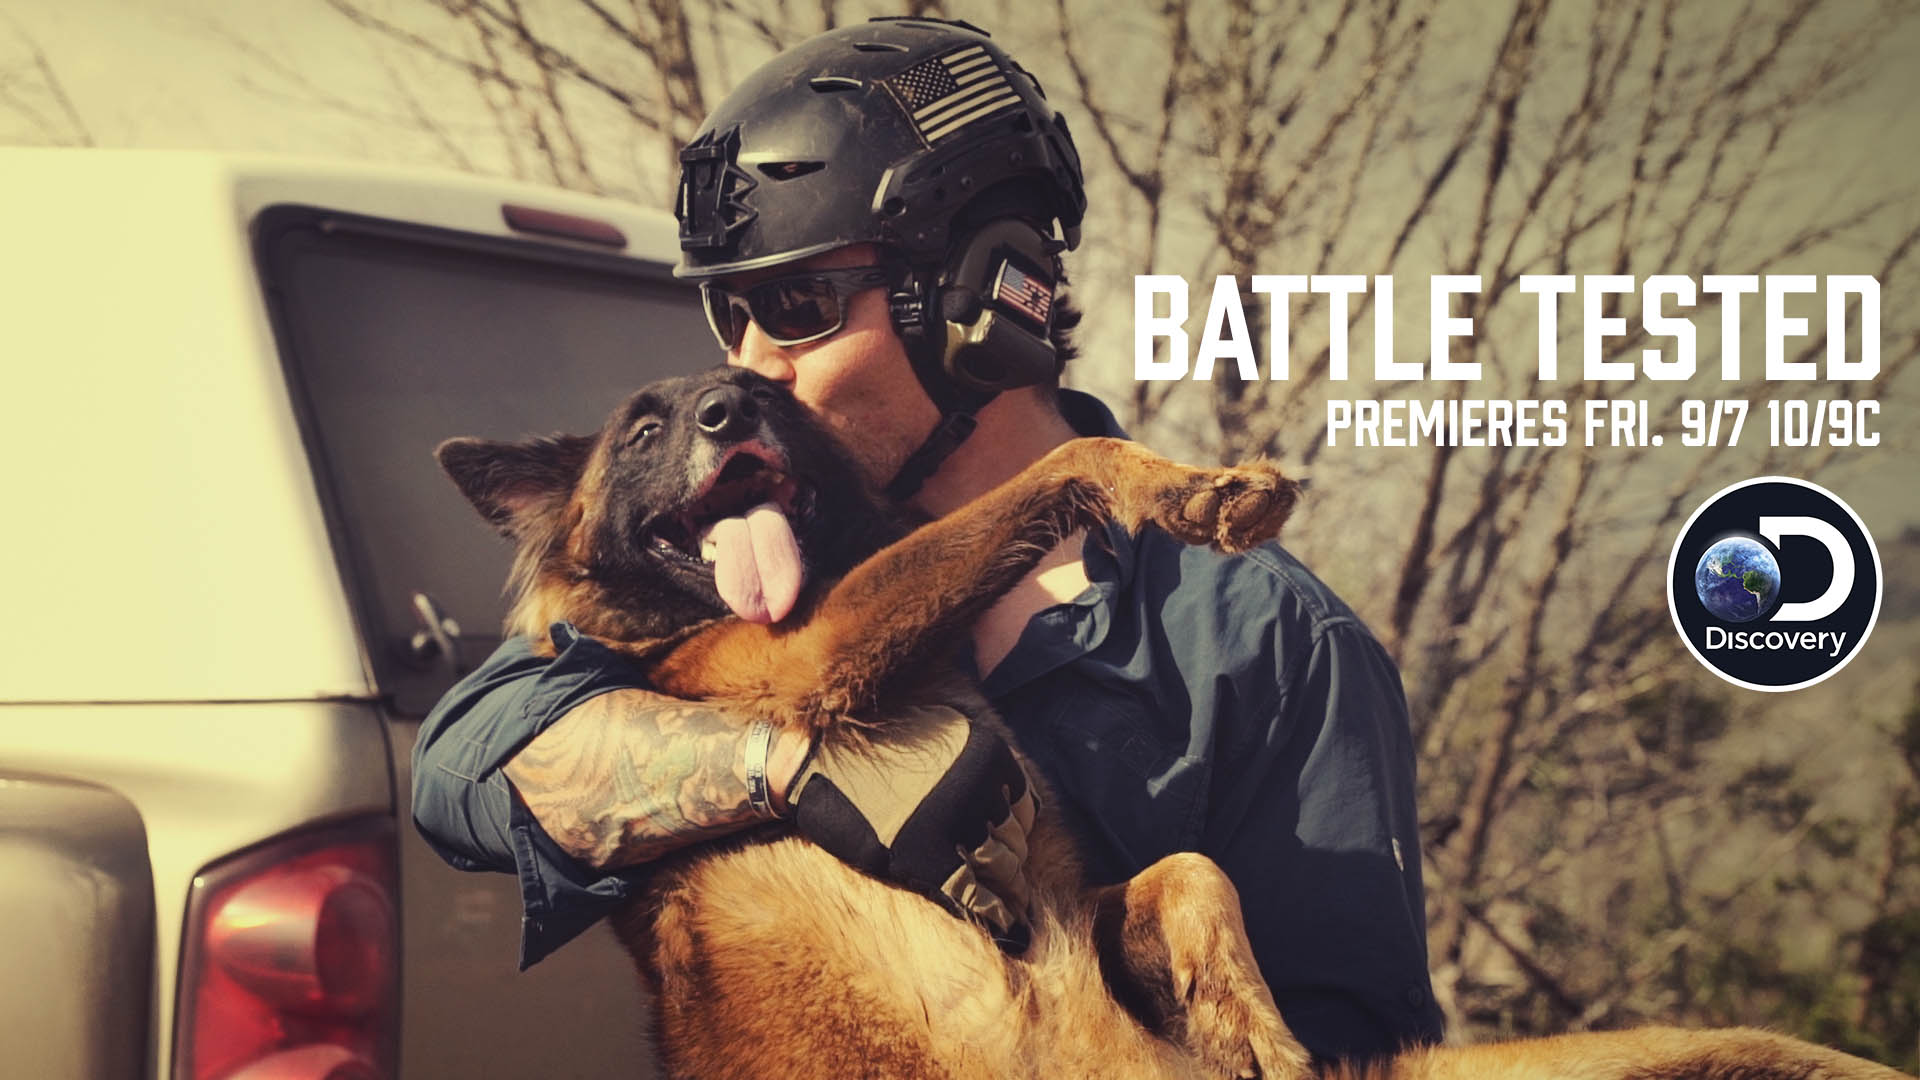 BattleTested-Social-05 copy.jpg